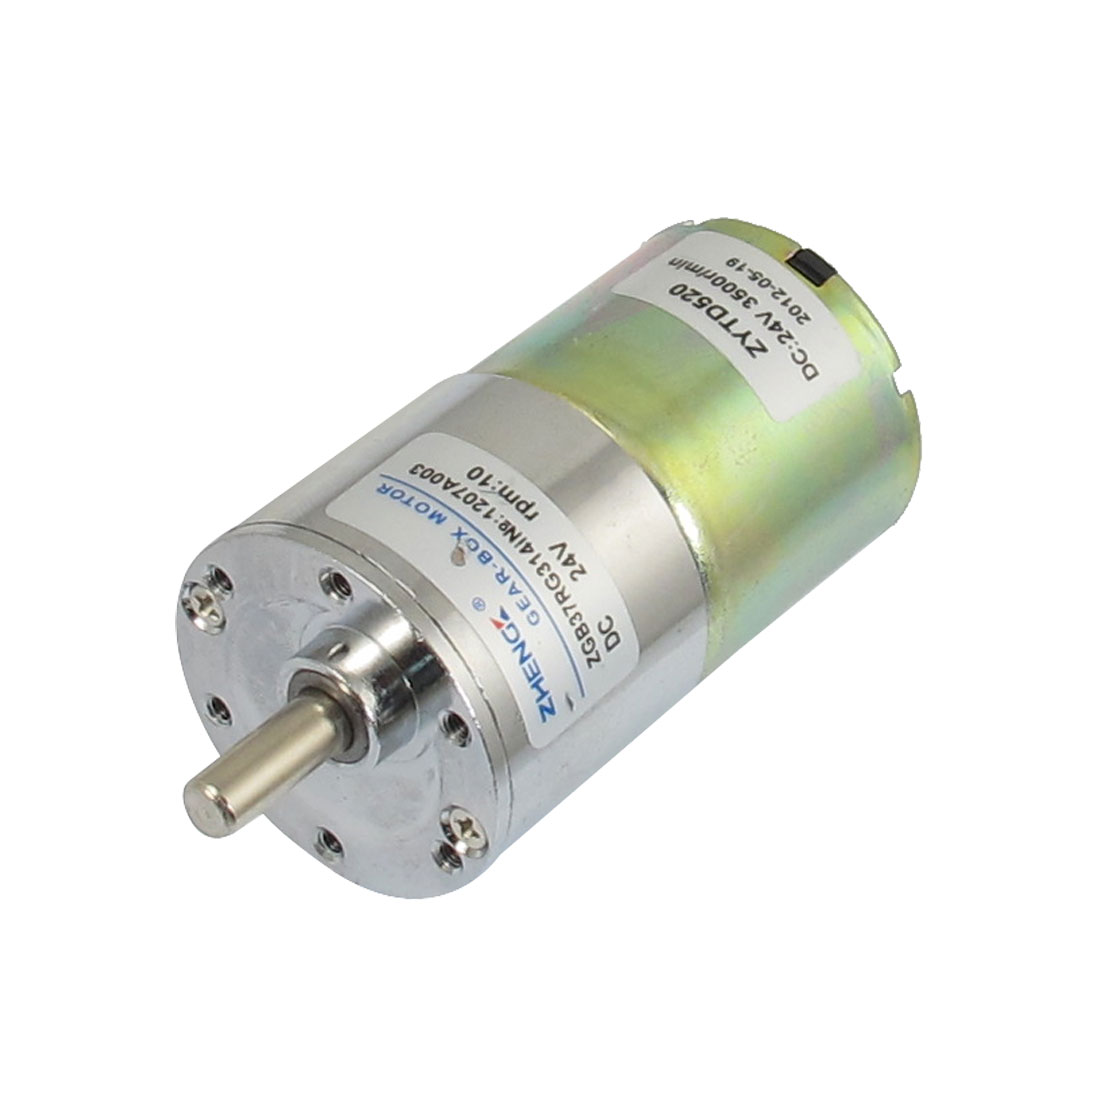 DC 24V 10RPM Output Speed Cylinder Shaped Oven Geared Motor